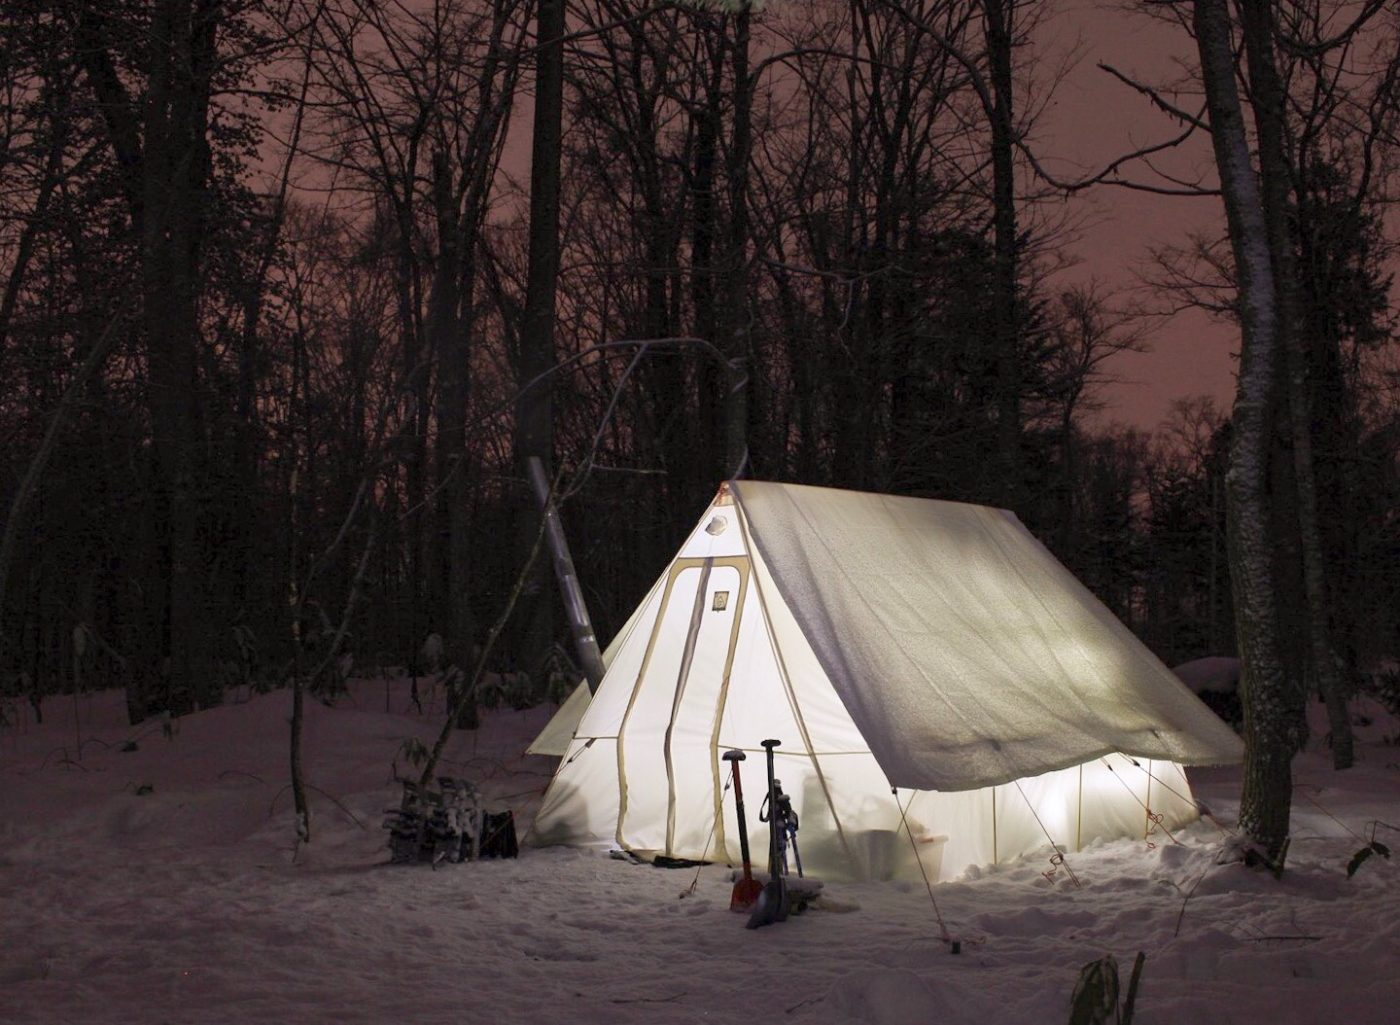 Episode 72 The Only Late Season Tent Youu0027ll Ever Need with Snowtrekker Tents u2014 Montana Sporting Journal & Episode 72: The Only Late Season Tent Youu0027ll Ever Need with ...